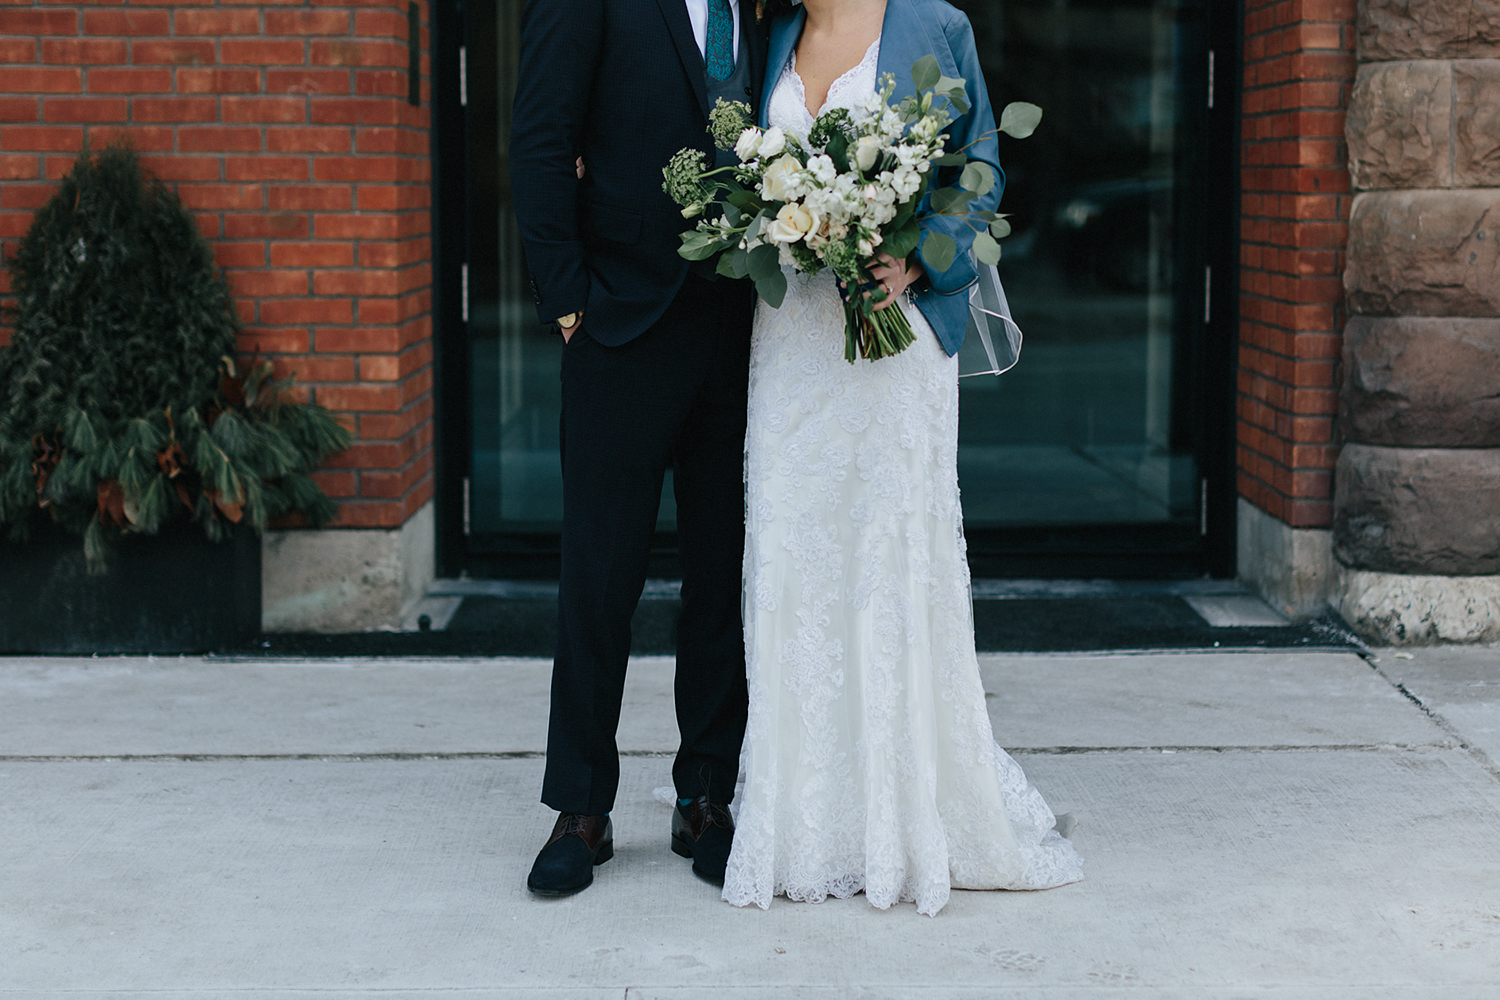 49-13-broadview-hotel-real-wedding-in-downtown-toronto-floral-bouquets.jpg